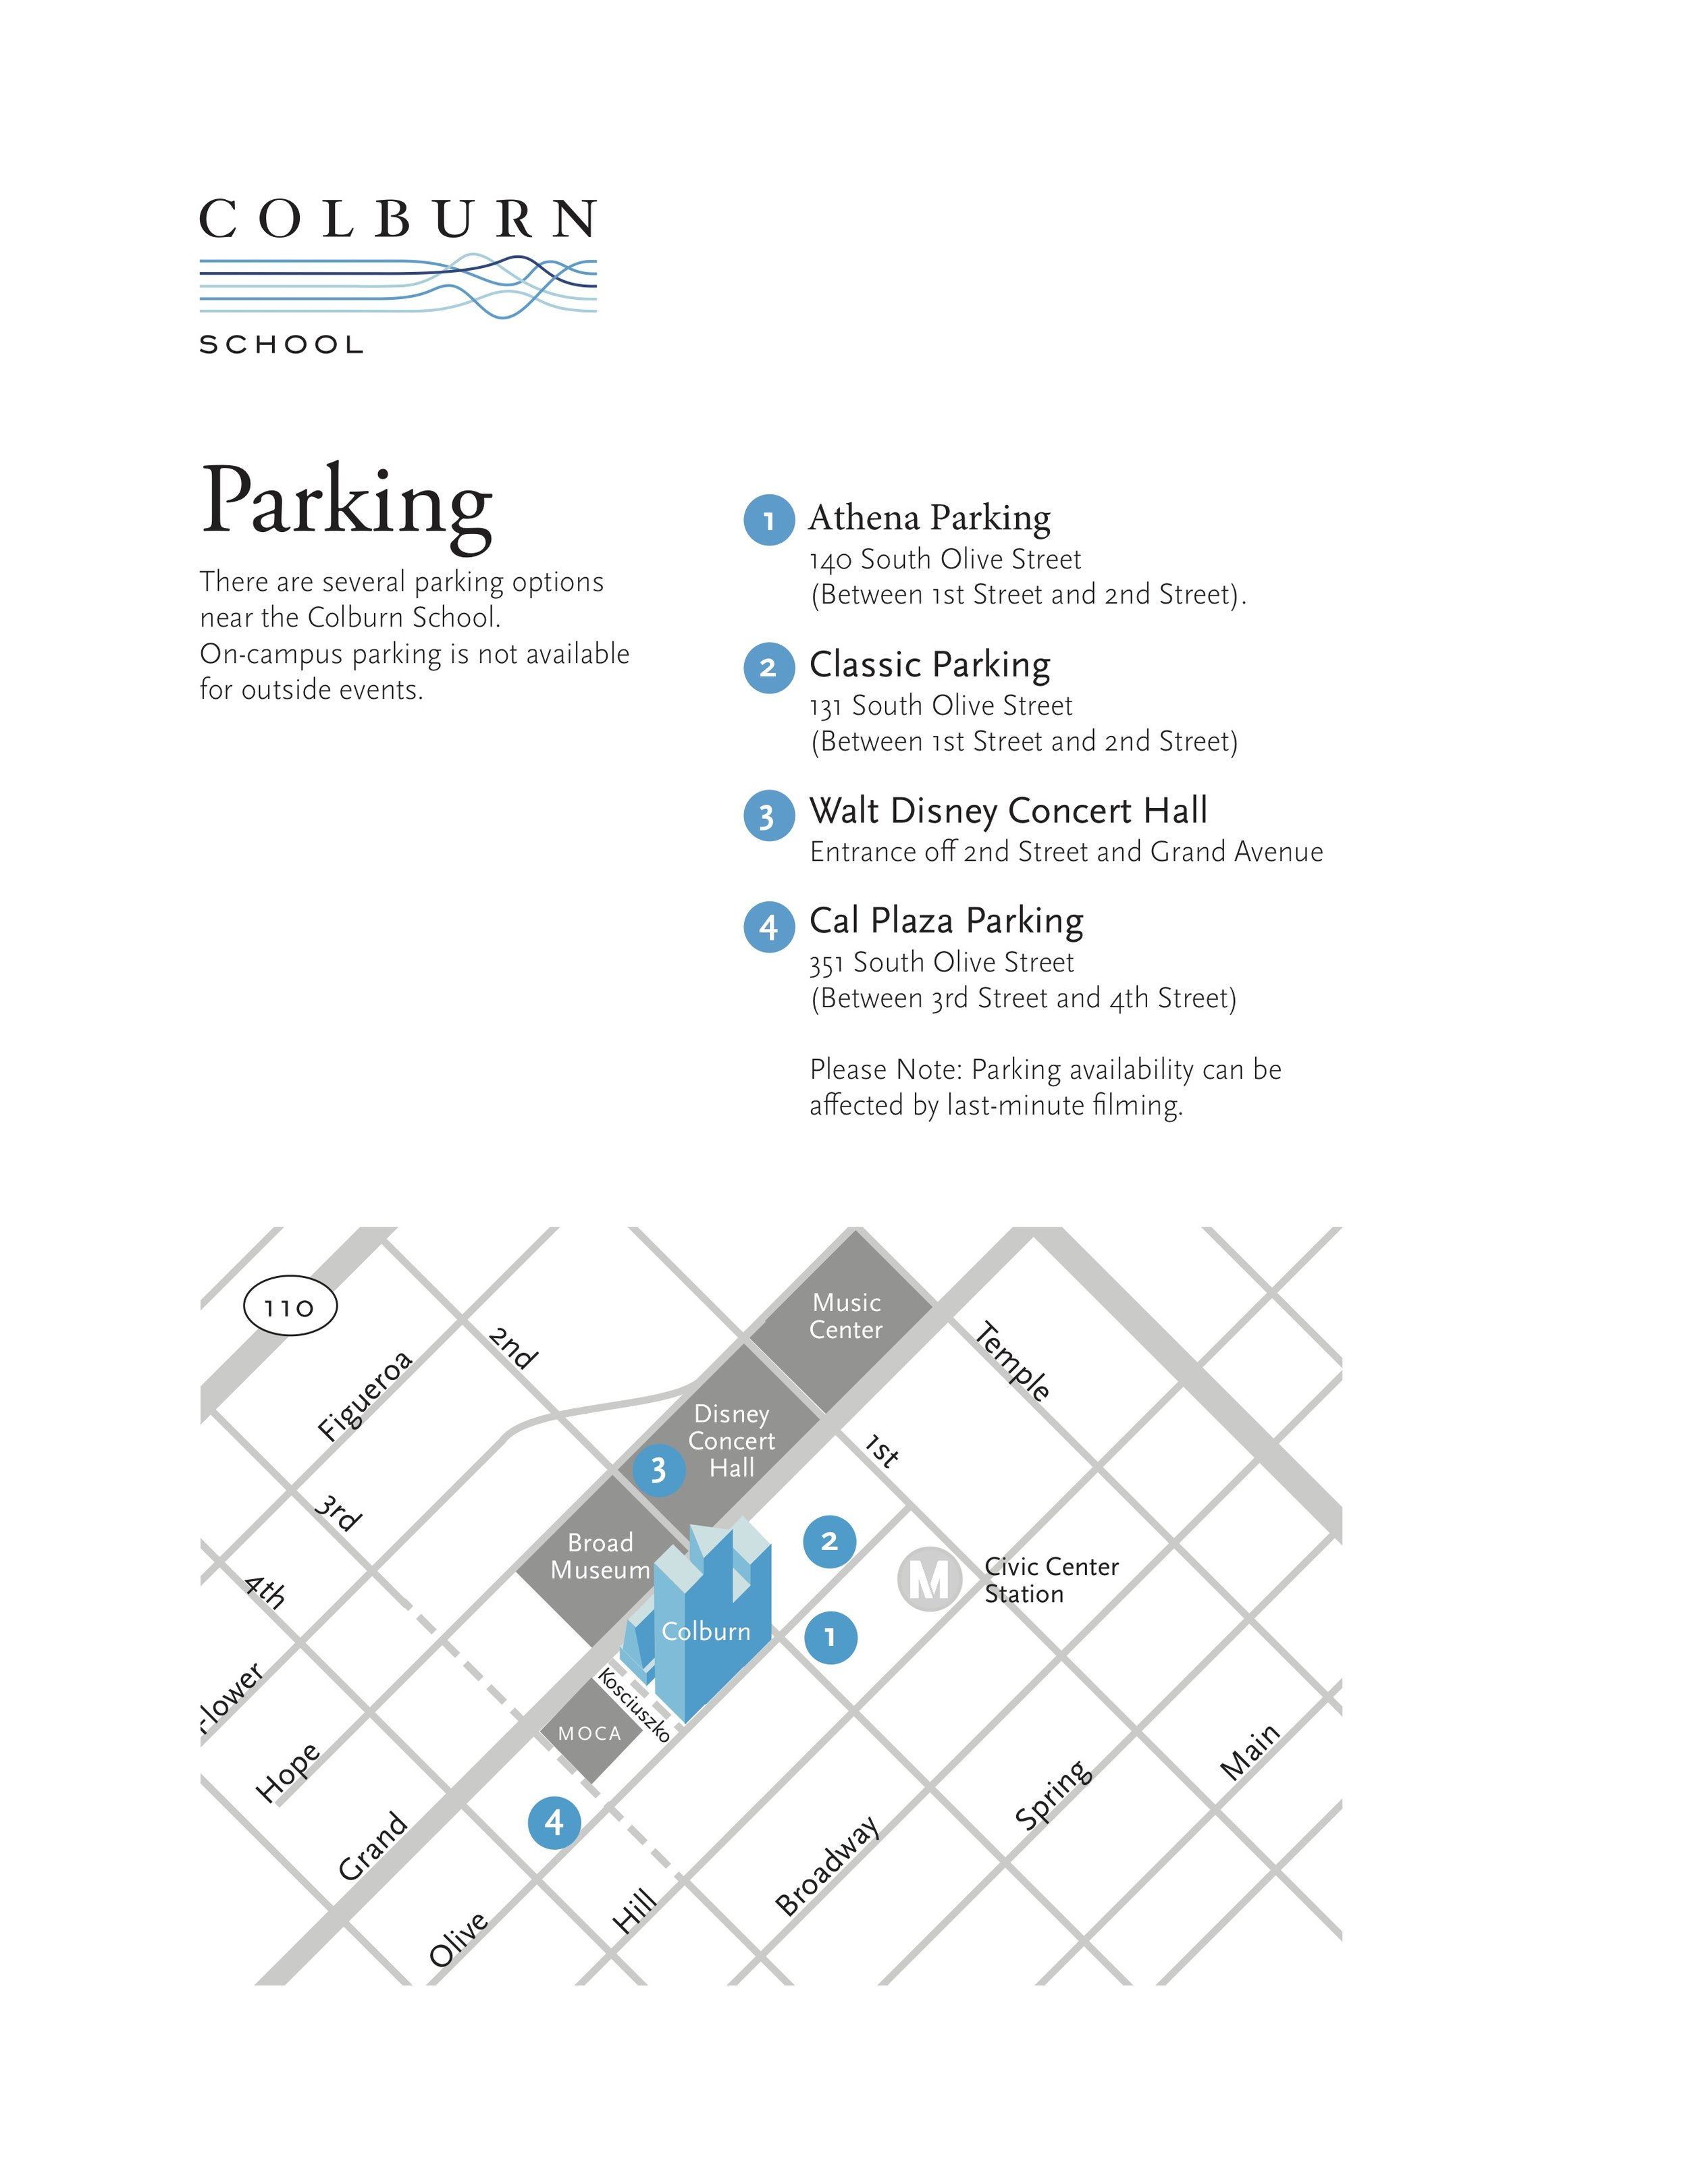 Colburn Parking Guide.jpg